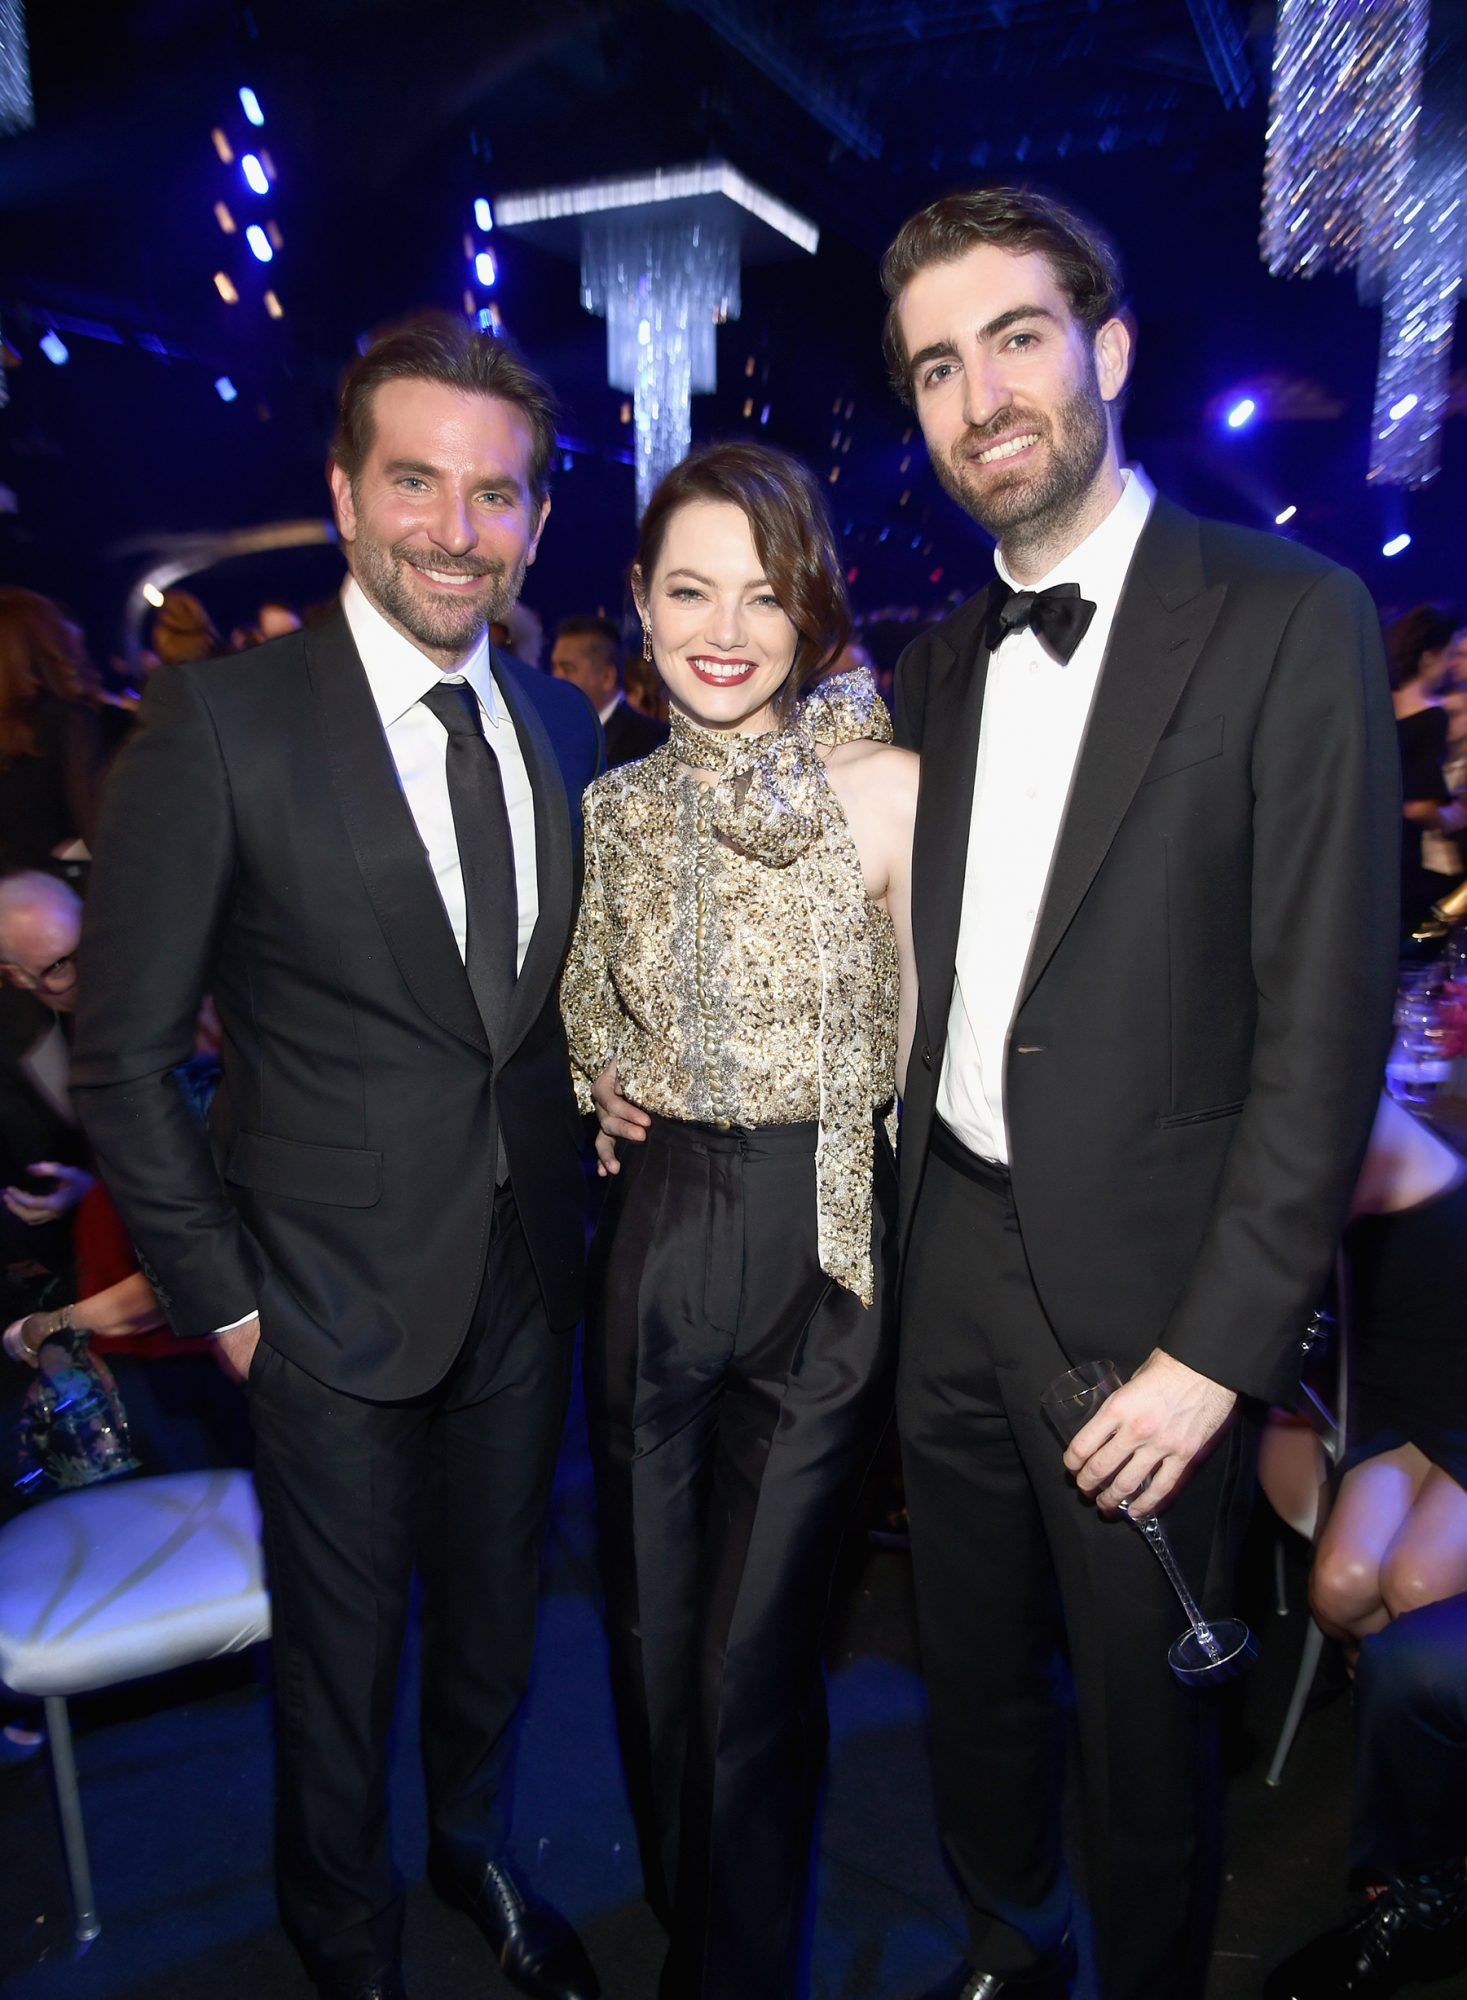 Bradley Cooper, Emma Stone, and Dave McCary